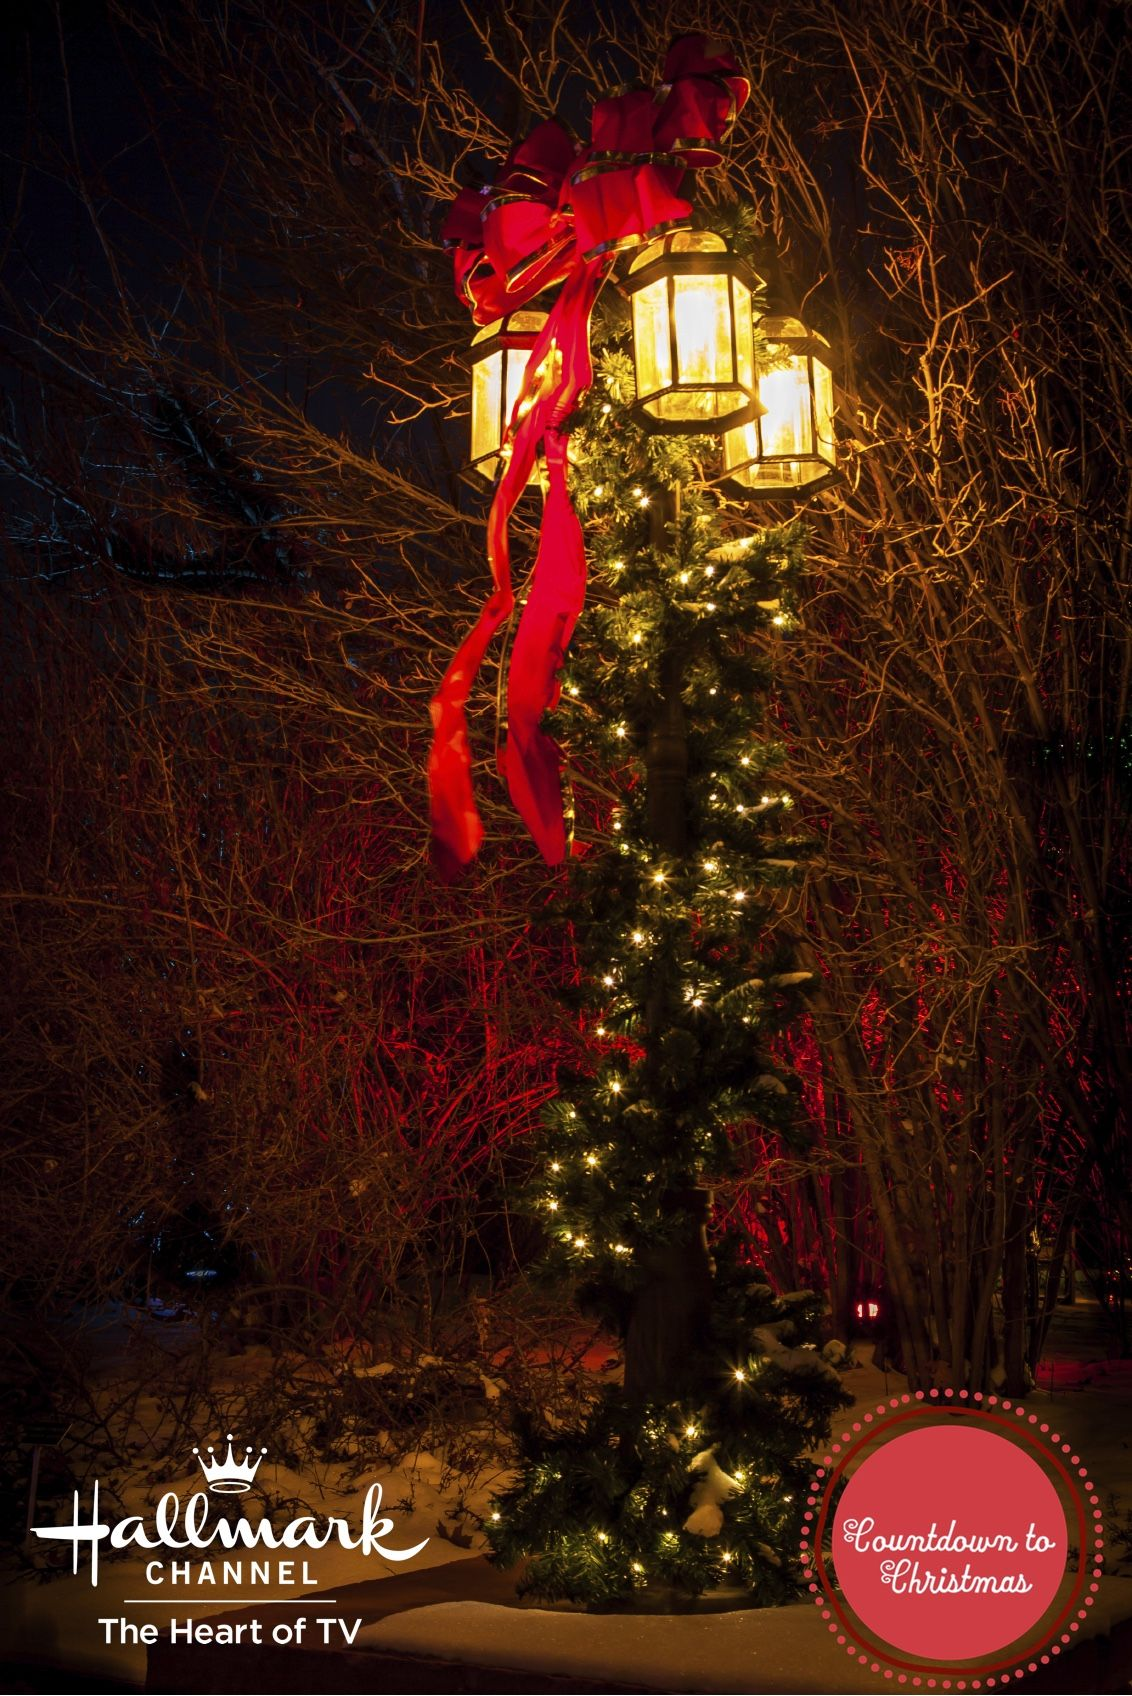 The brightest lights at Christmas shine from within